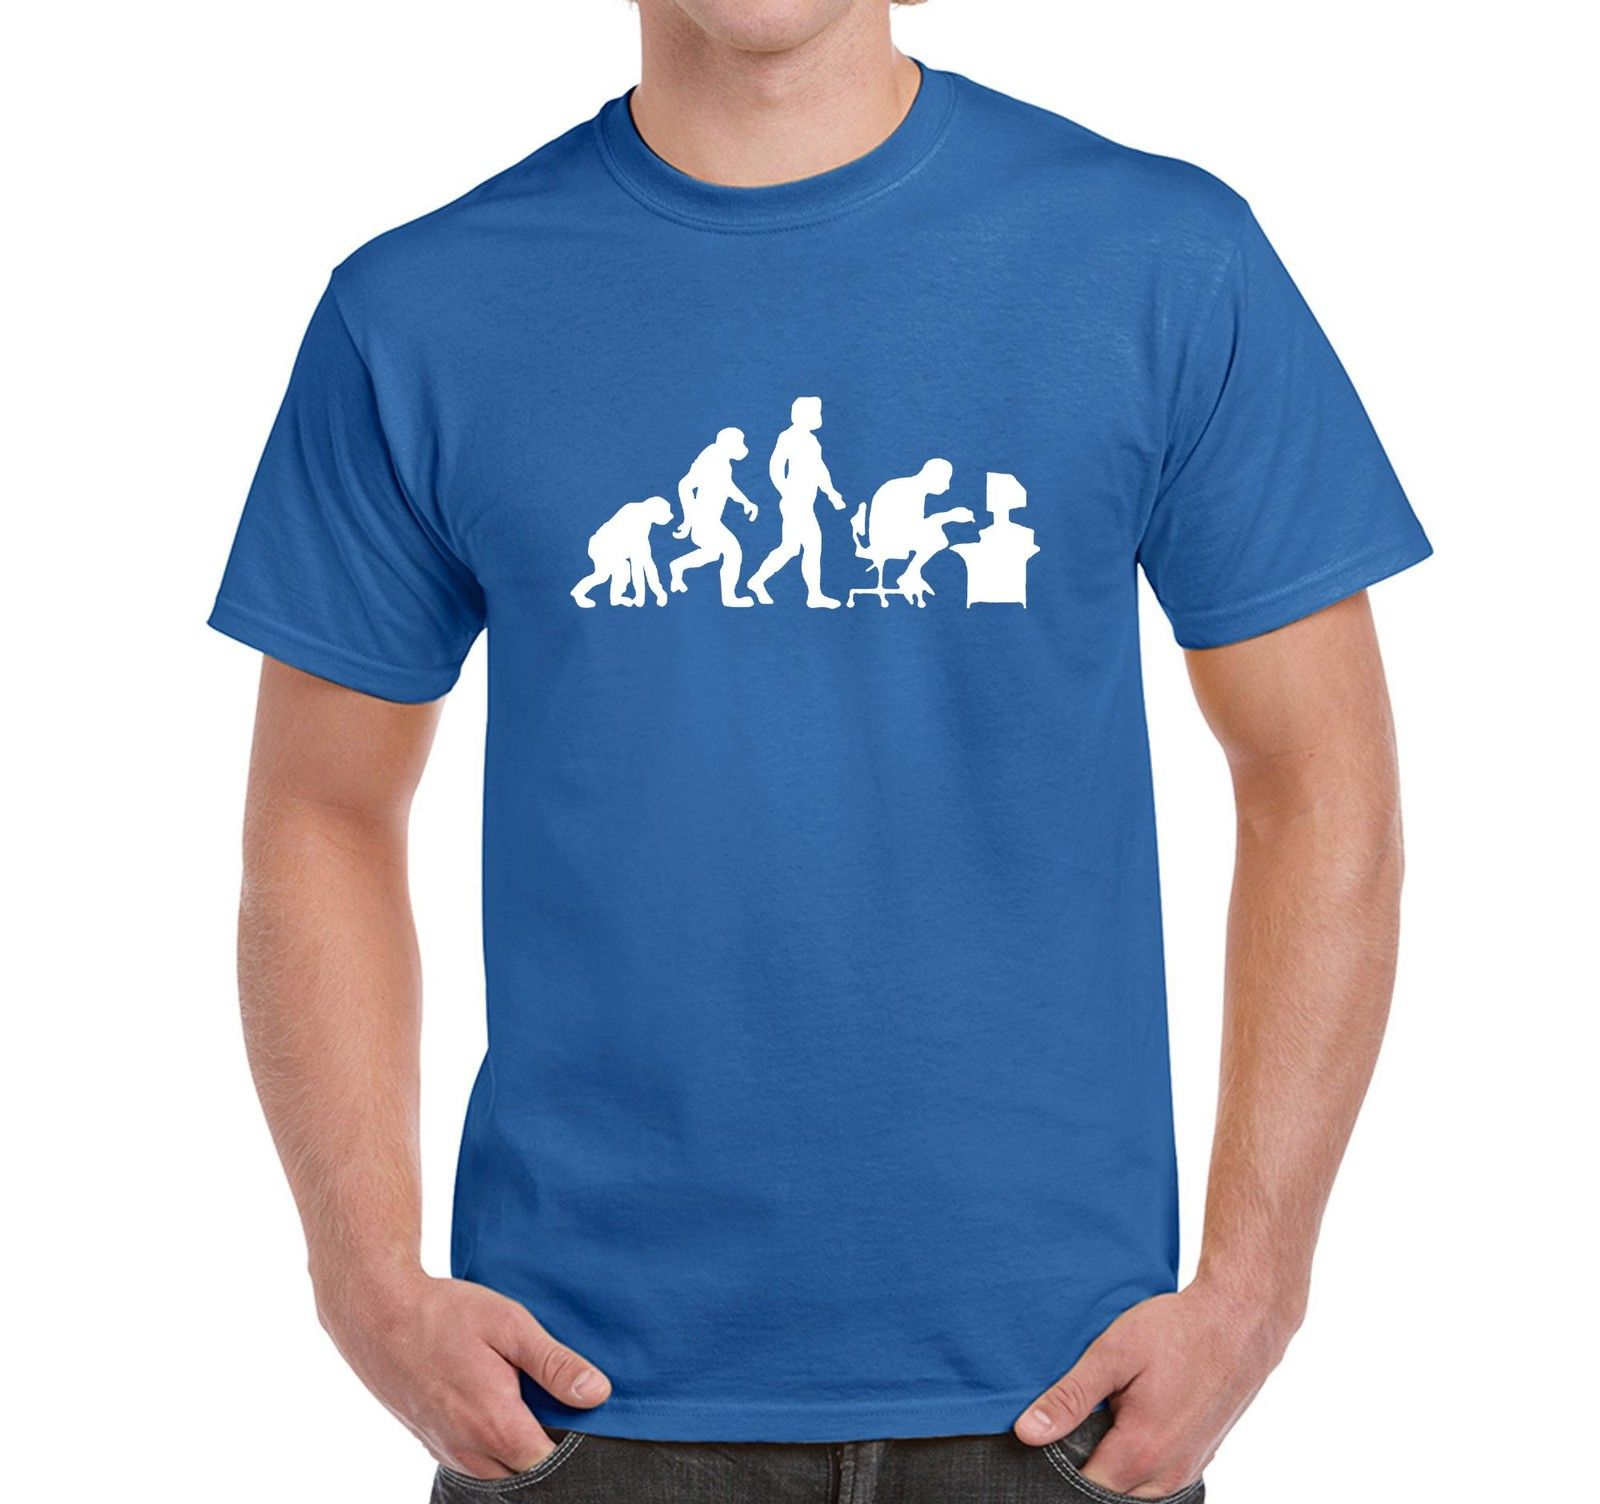 Mens Novelty T Shirt Evolution of A Computer Geek Pc Gamer Tees Brand Clothing Funny T-Shirt Top Tee Fashion The New